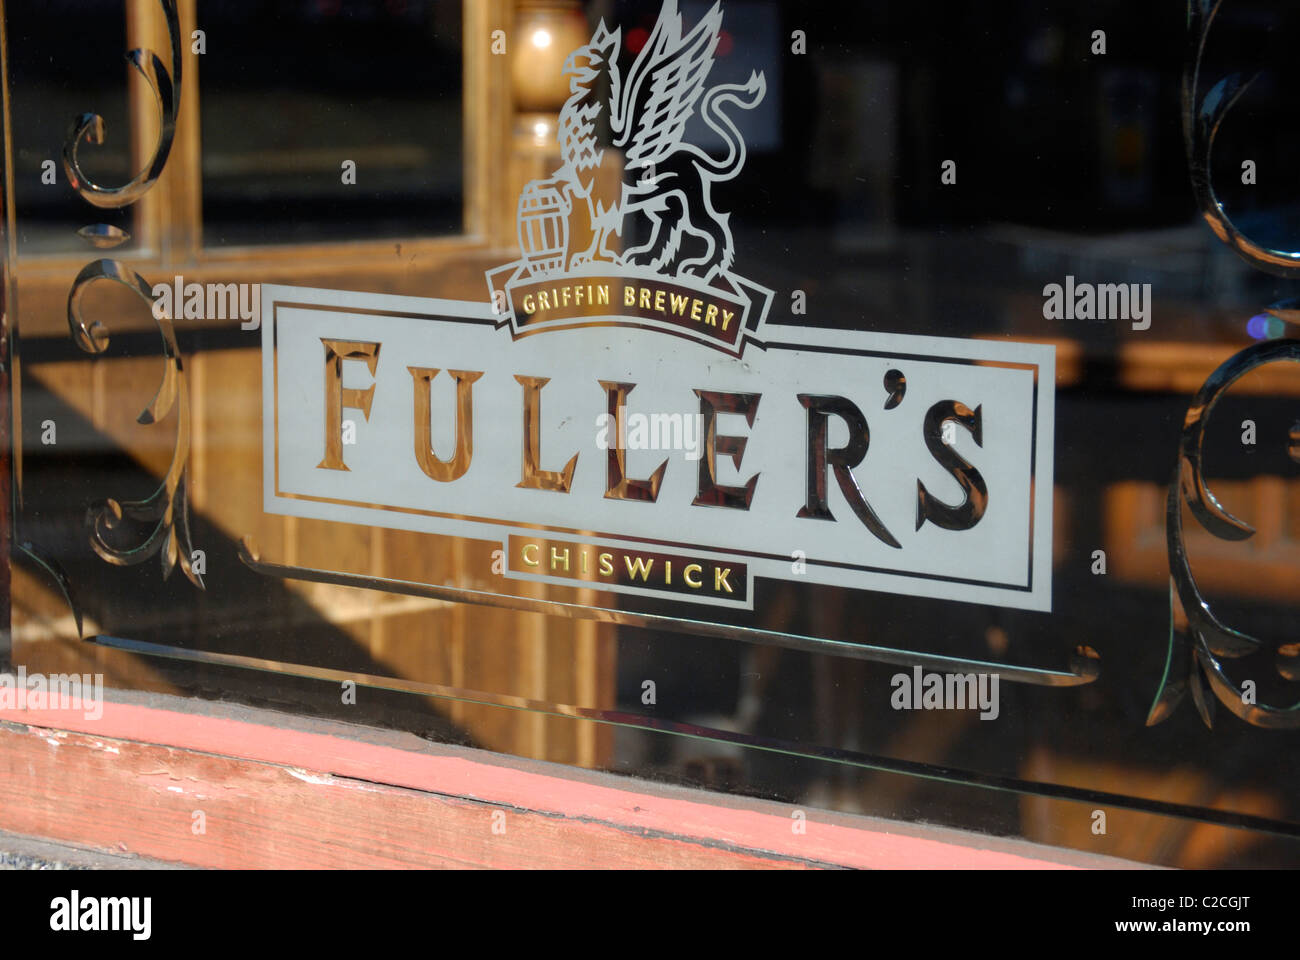 Fuller's brewery sign on a pub window - Stock Image